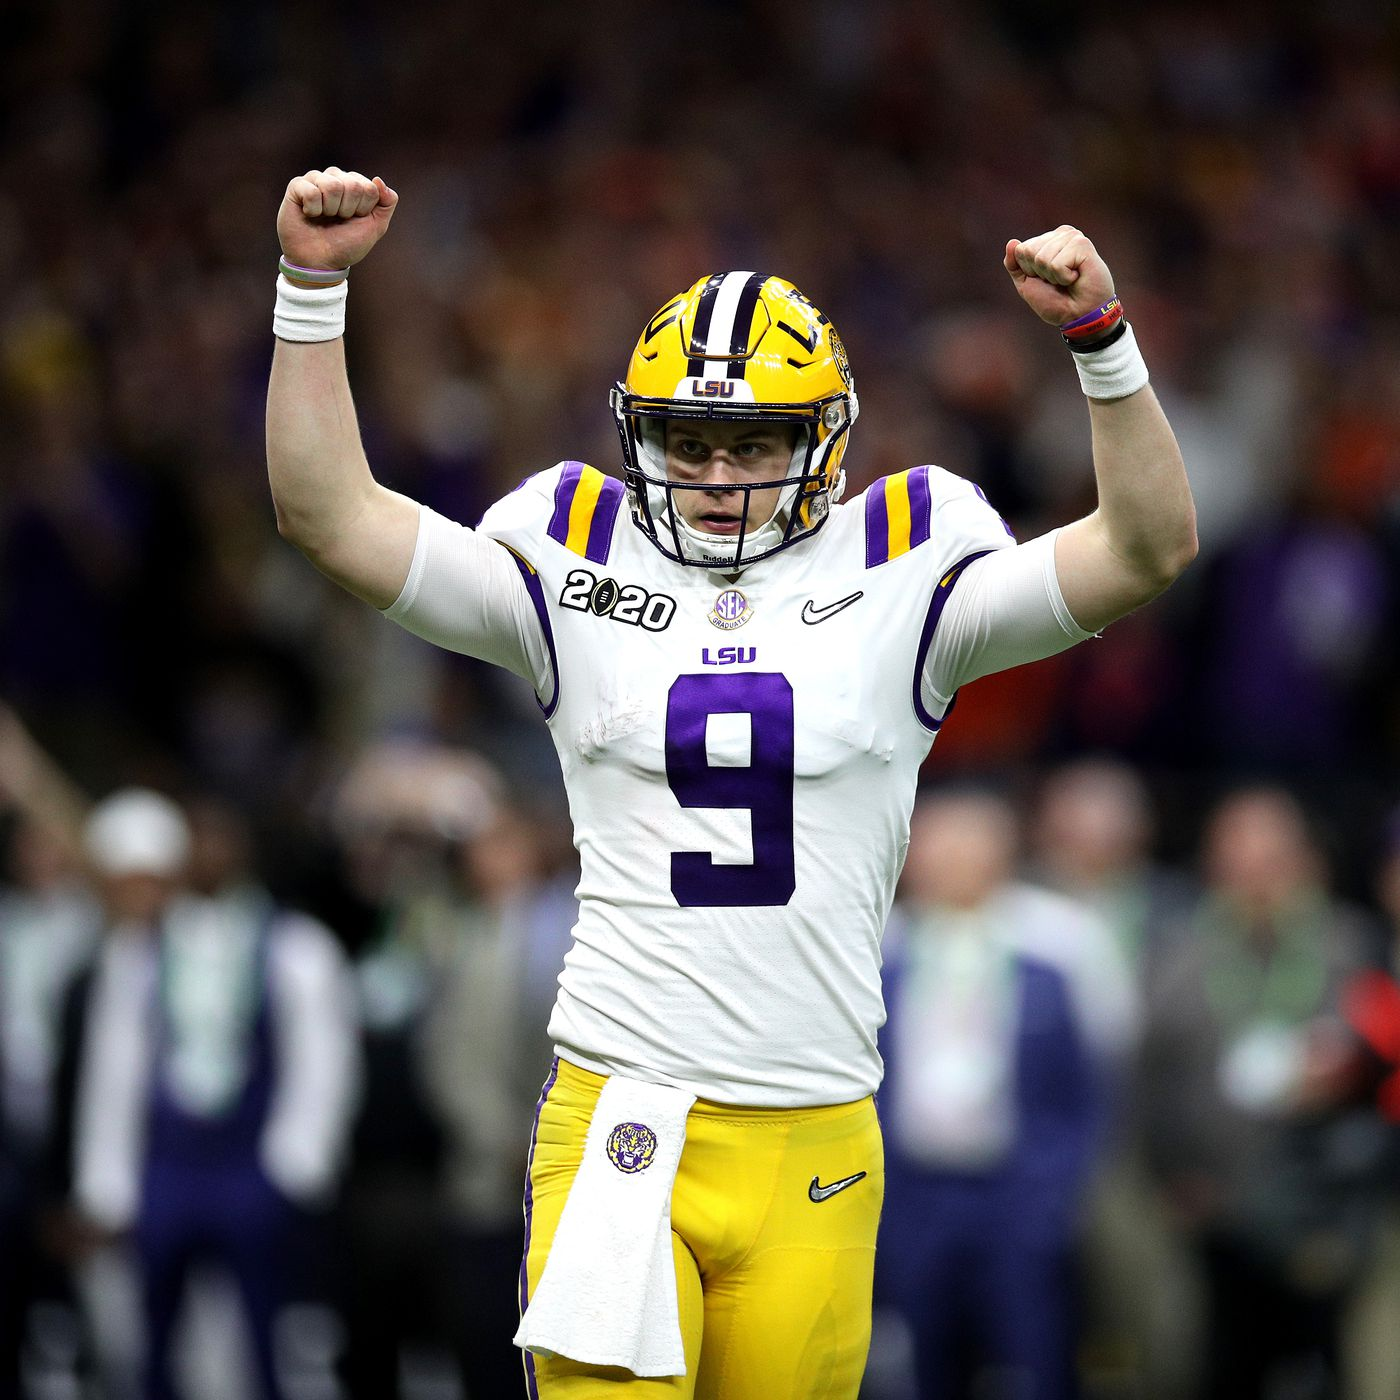 Nfl Draft Profile Lsu Tigers Joe Burrow Is The Ideal Imperfect Quarterback Prospect Cincy Jungle Joe burrow hasn't stepped into a cincinnati bengals huddle yet, but he has already shown his new burrow certainly has a measure of cache given his success last year at lsu, but he's yet to play a. nfl draft profile lsu tigers joe